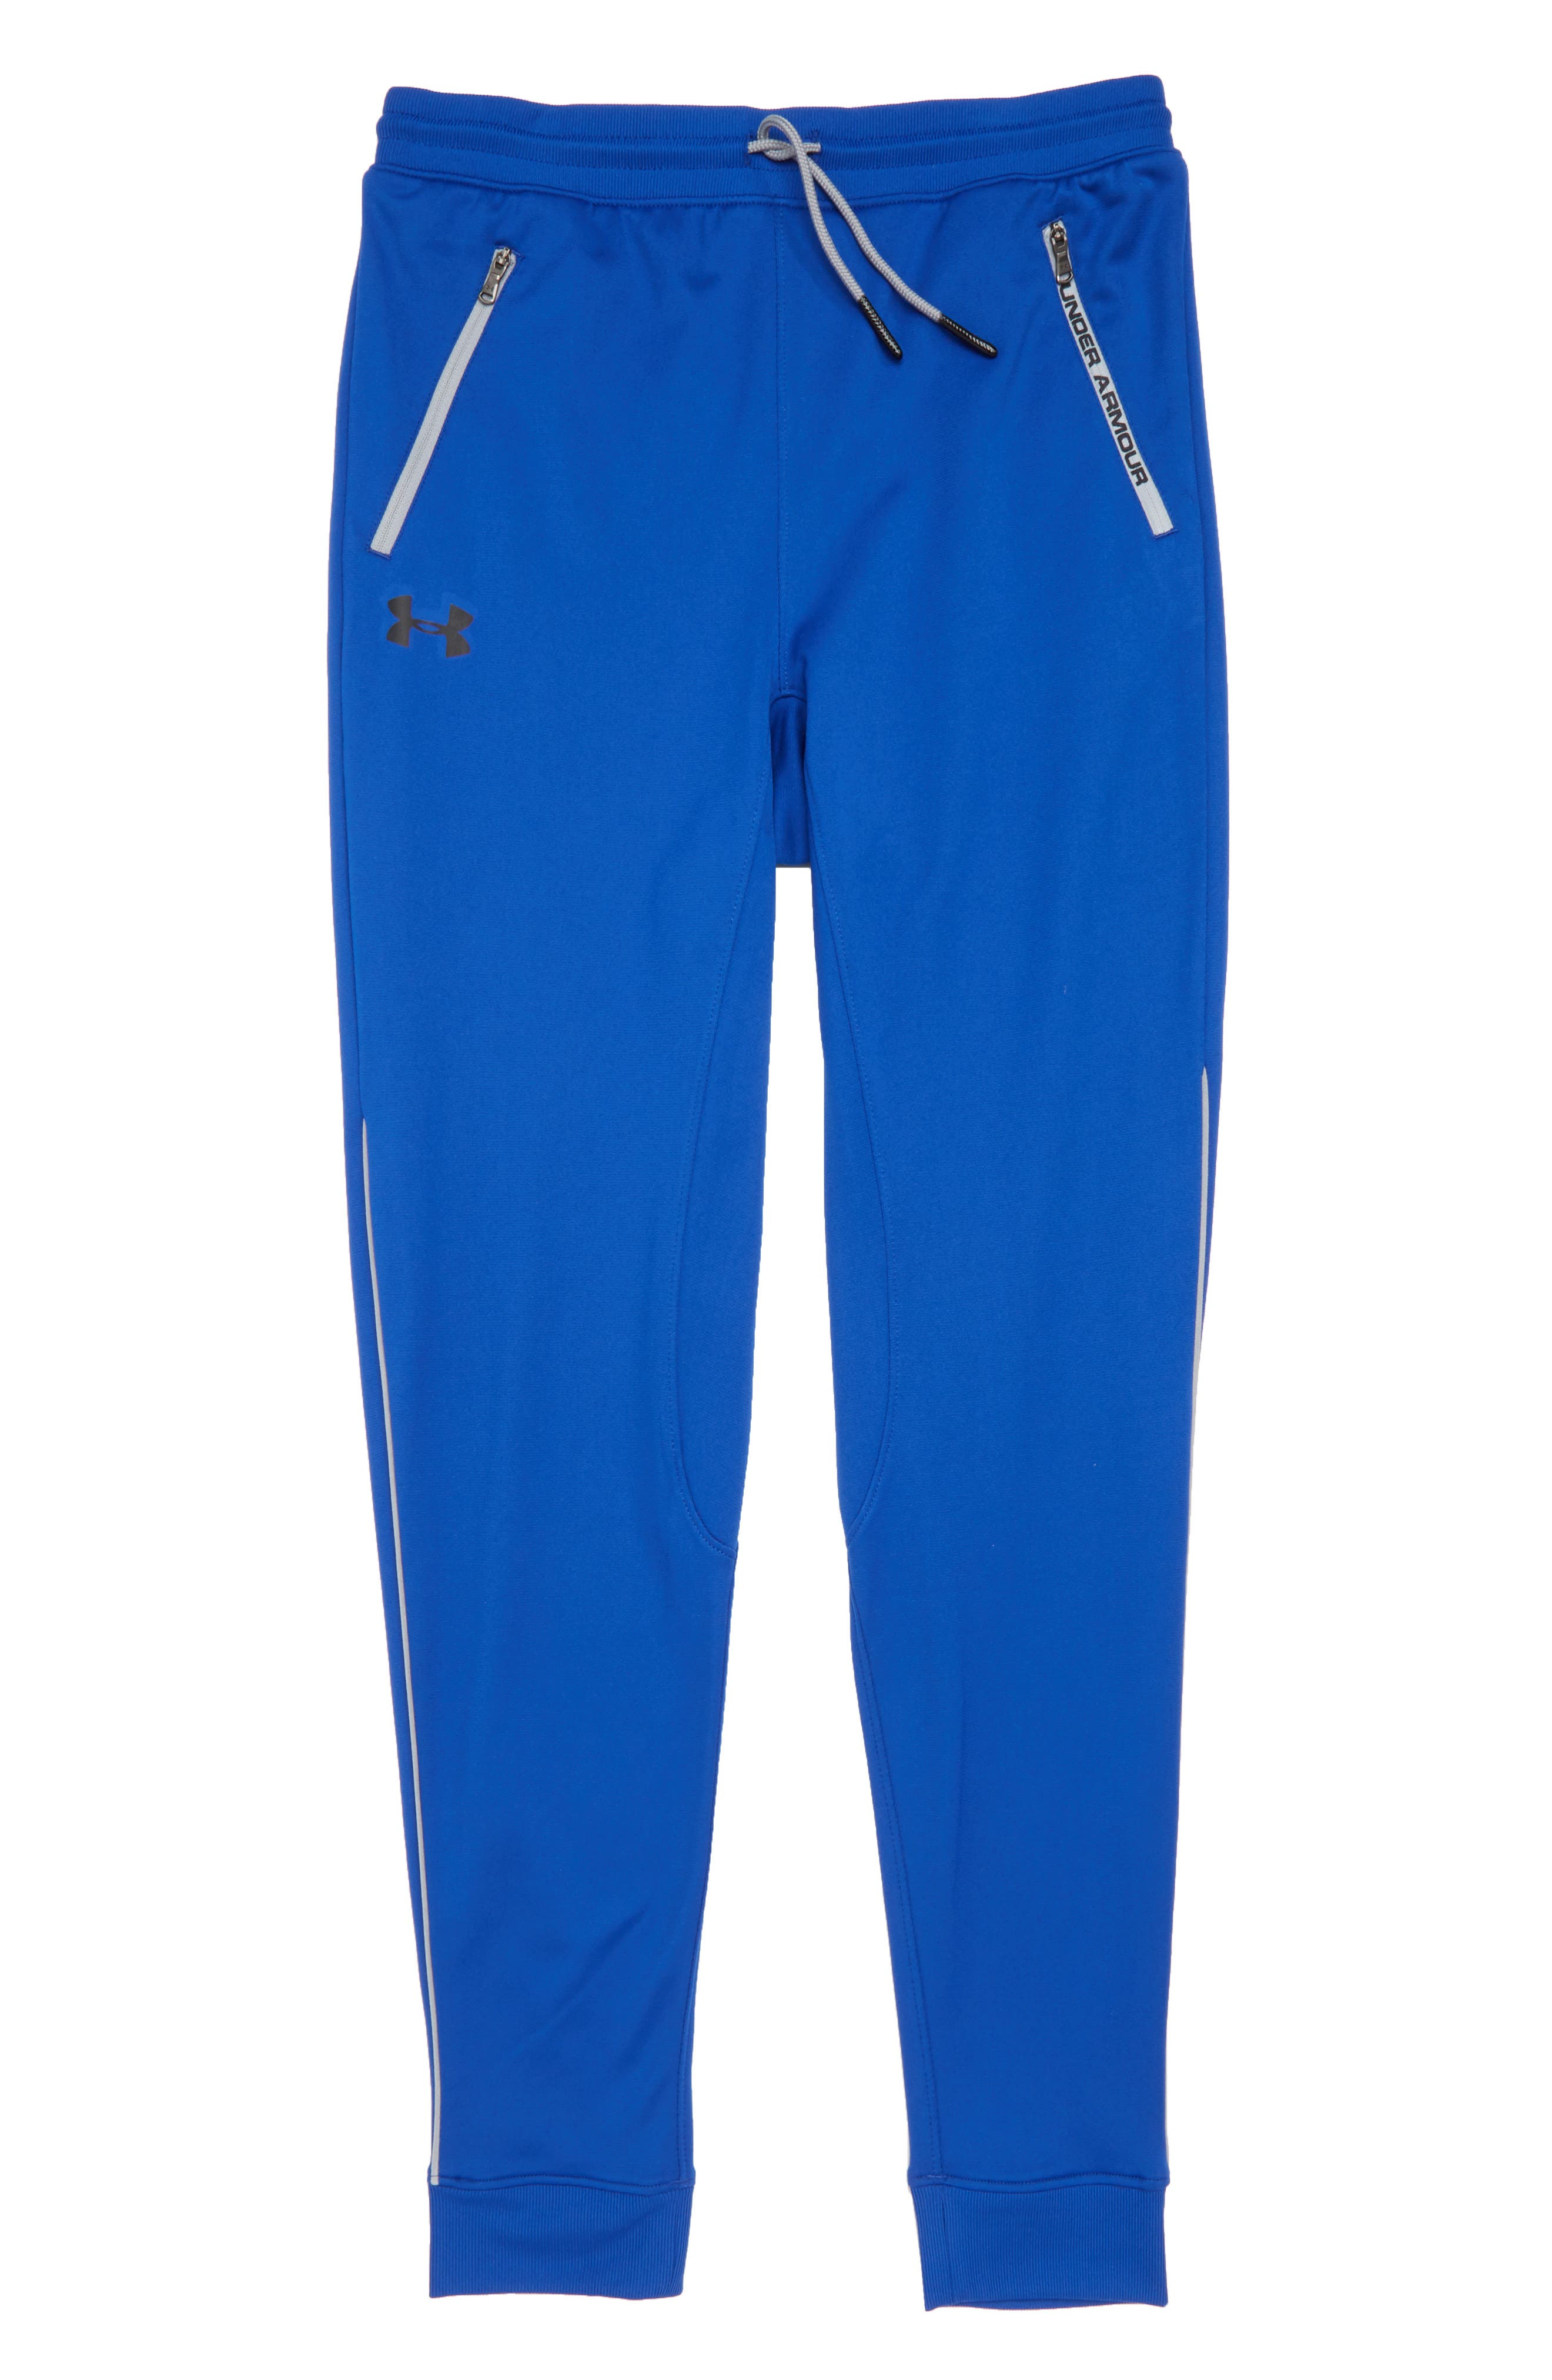 Boys Under Armour Pennant Tapered Pants Size S (78)  Blue